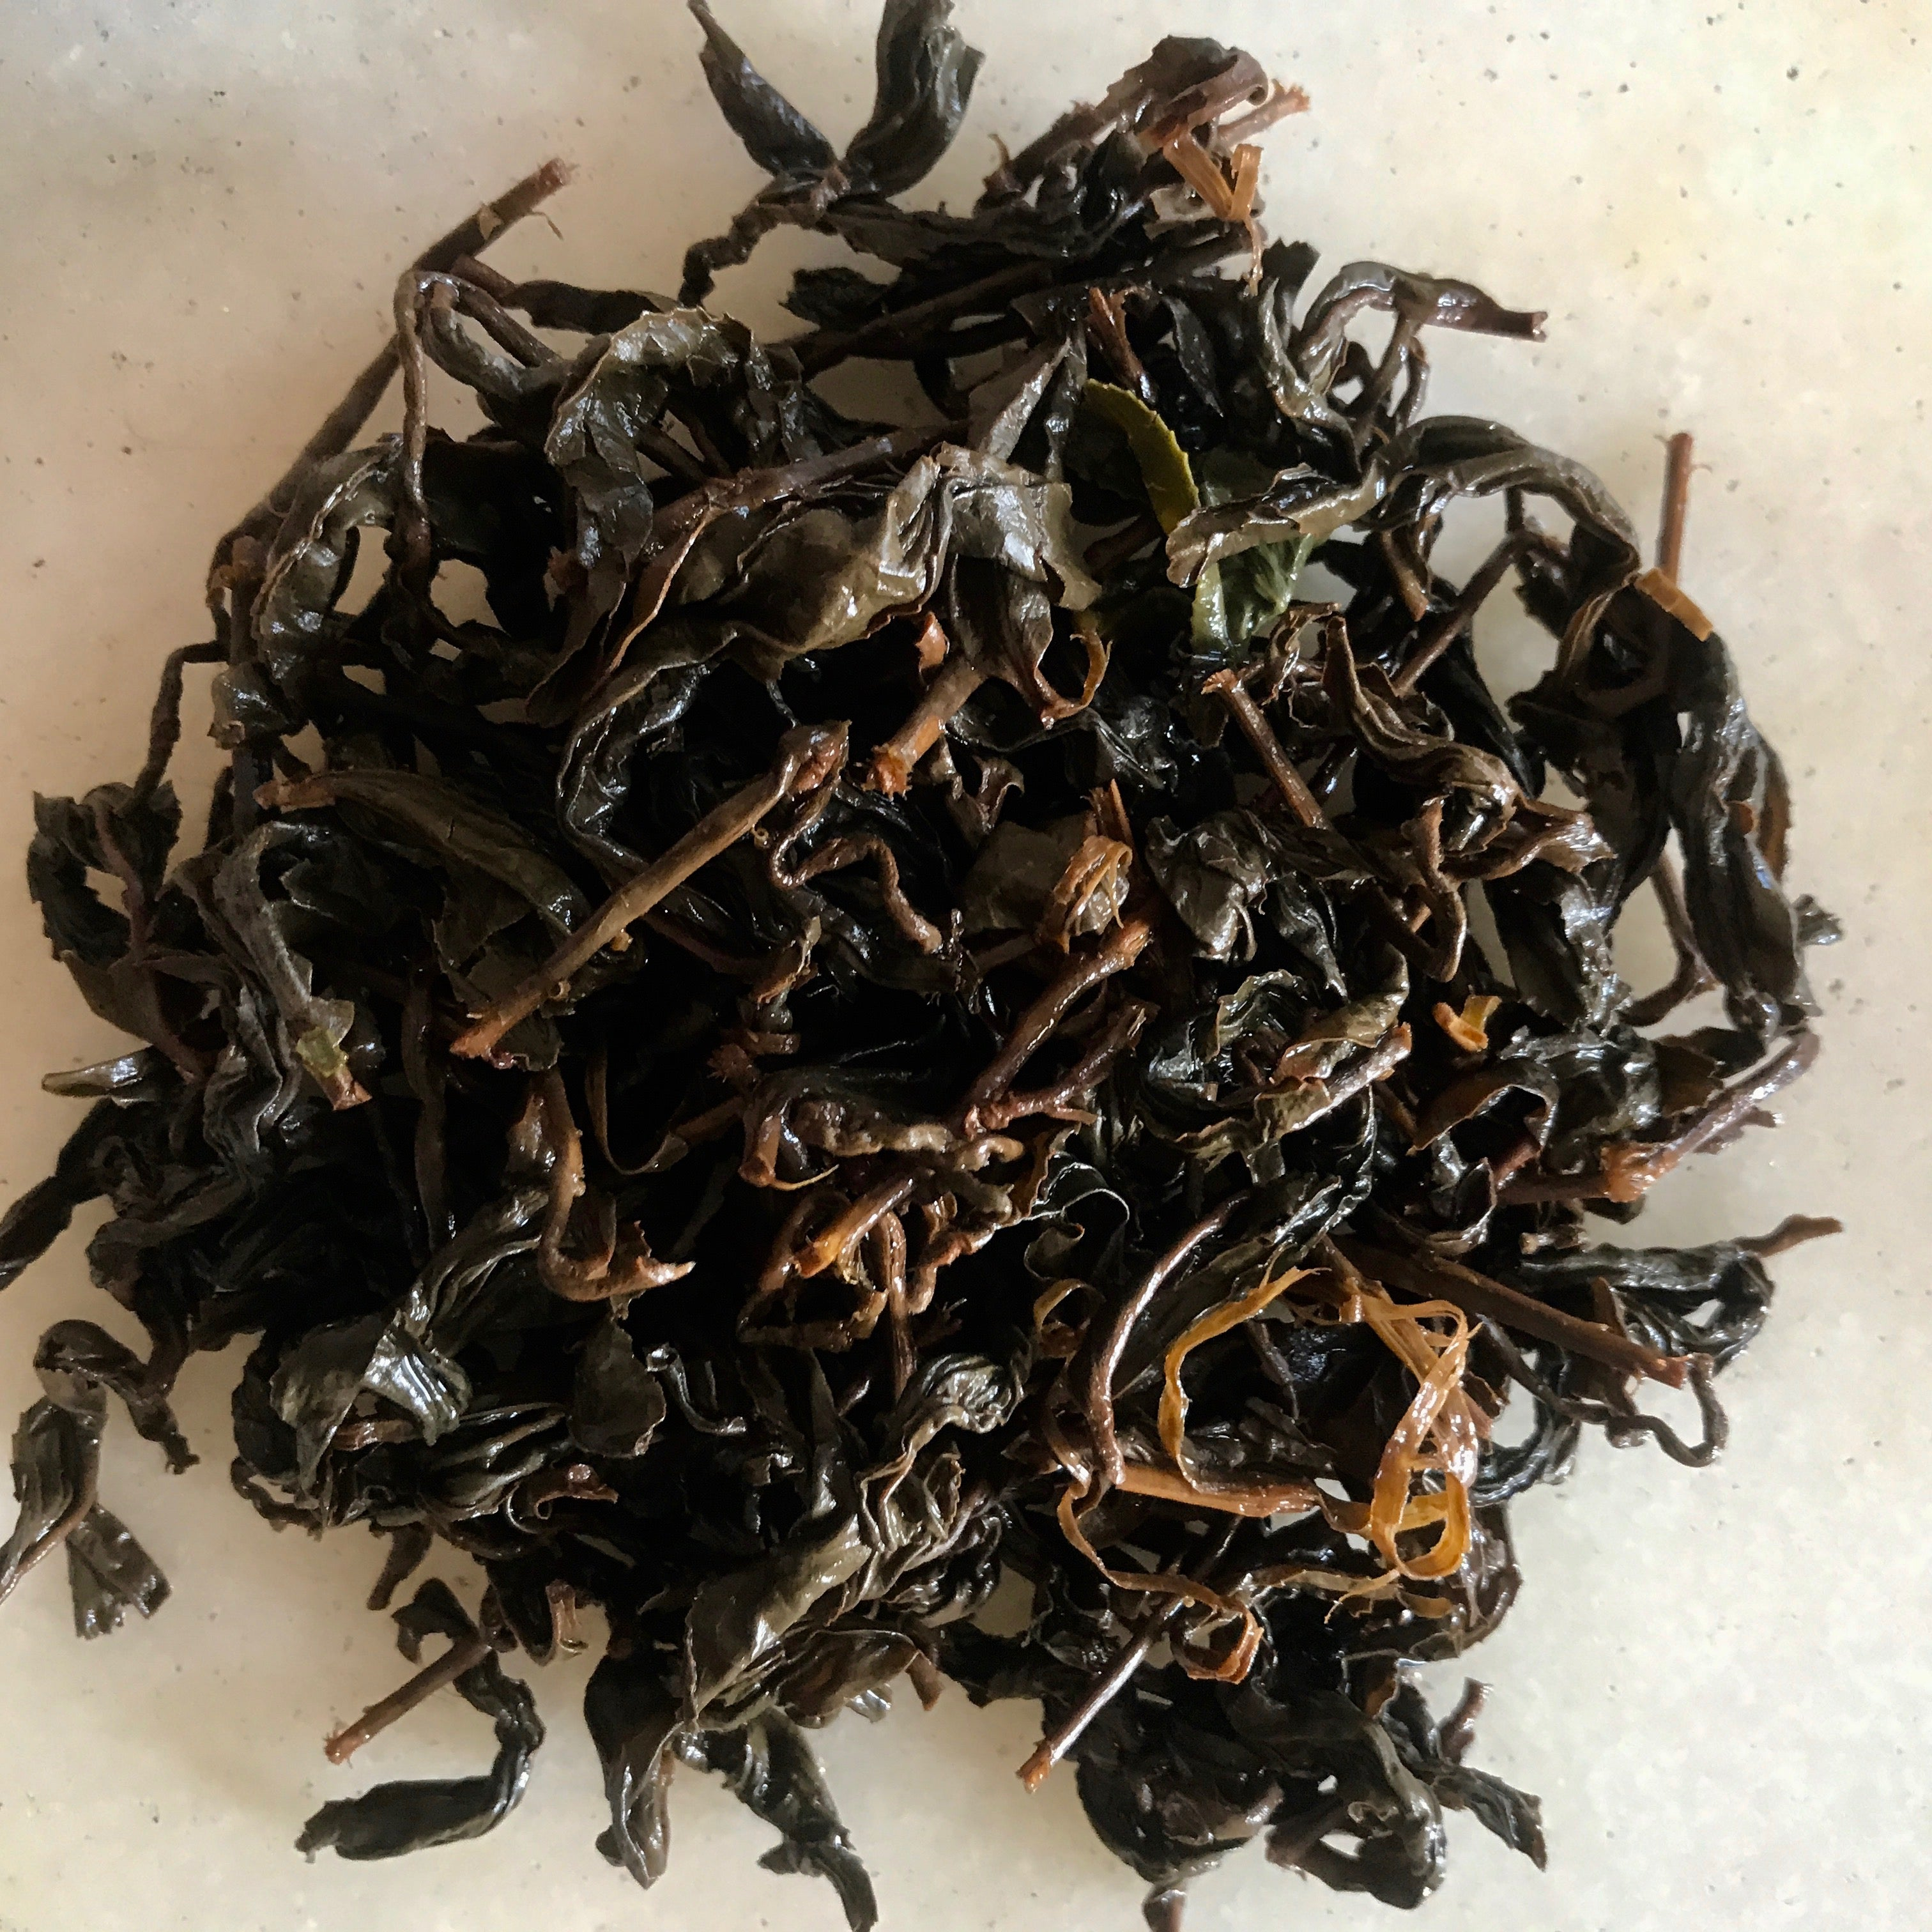 Qing Xin Oolong Tea leaves after brewing